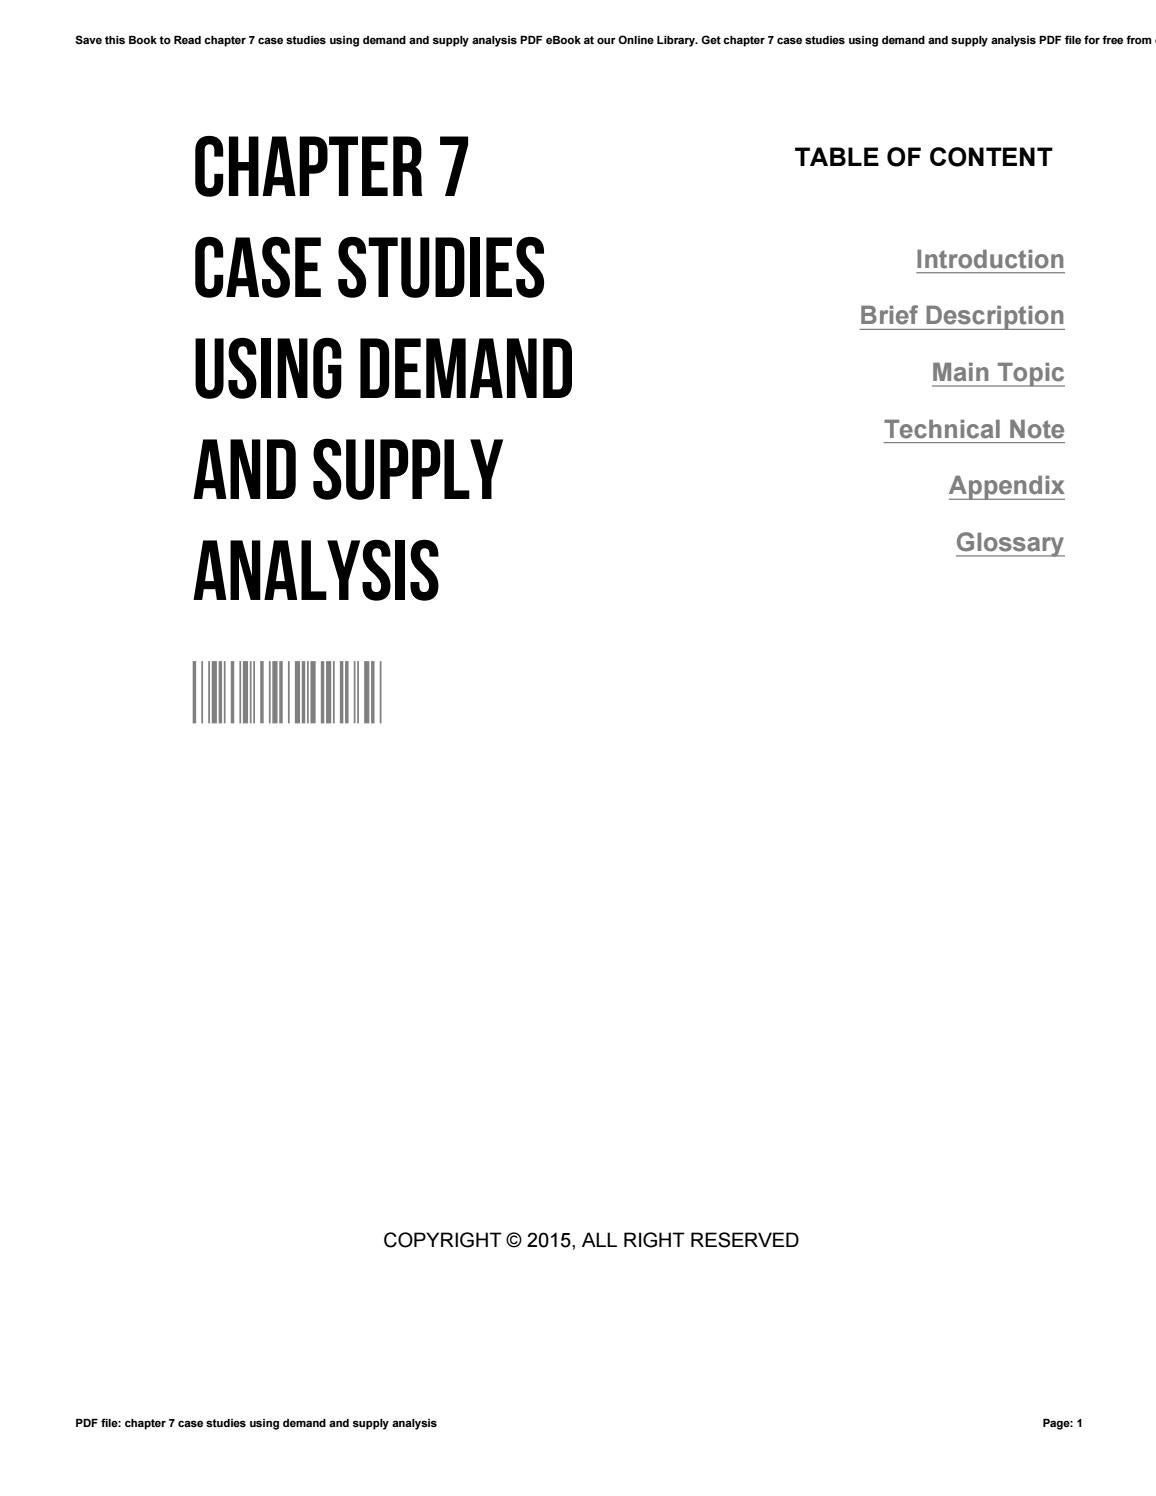 Chapter 7 case studies using demand and supply analysis by